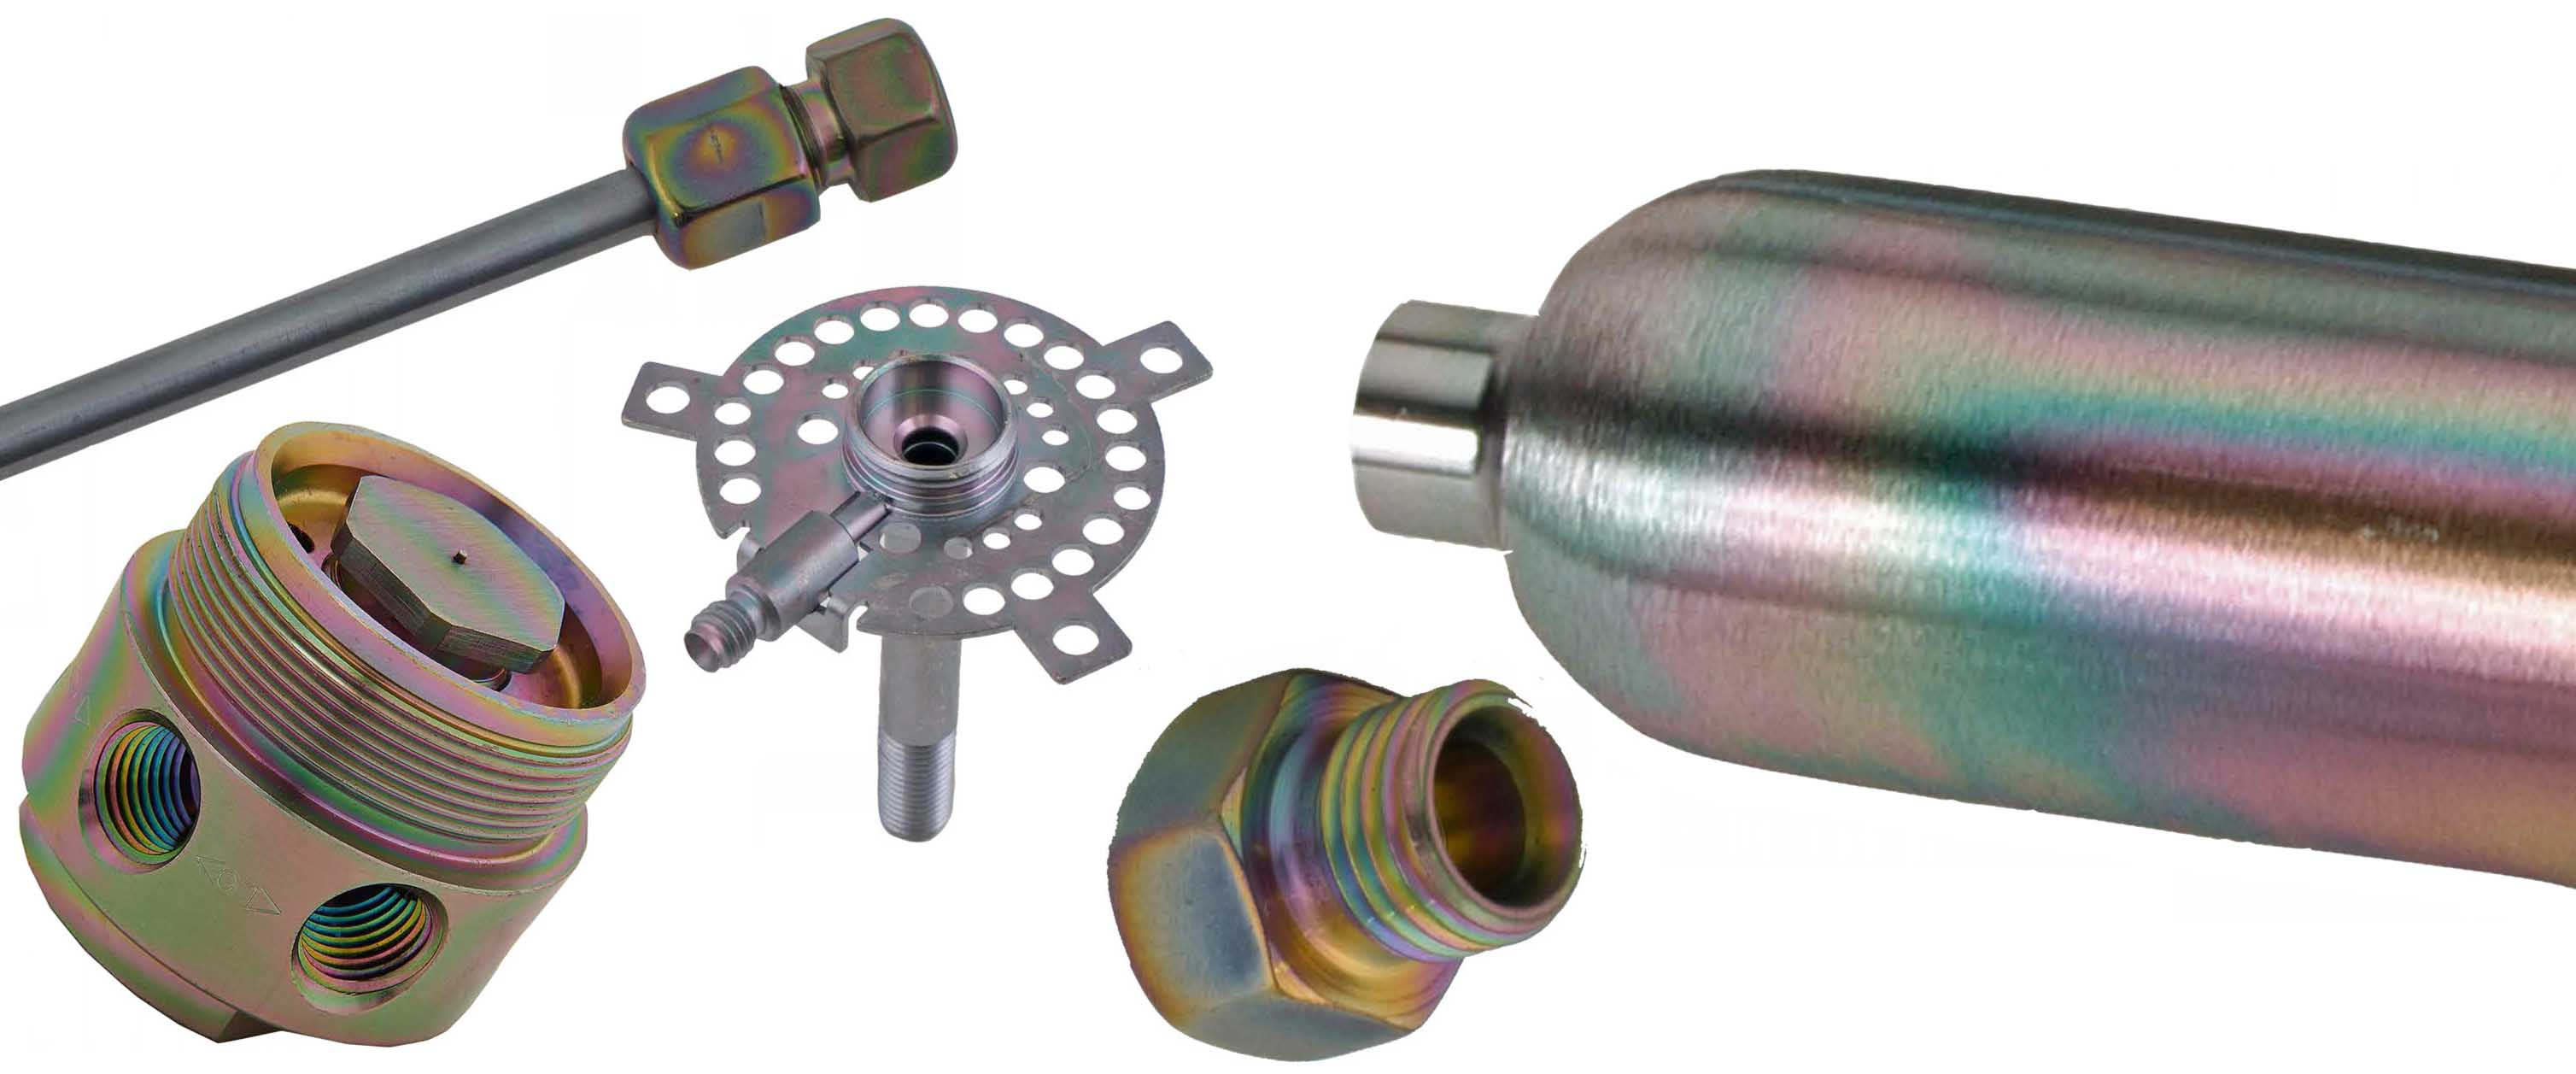 Coated parts